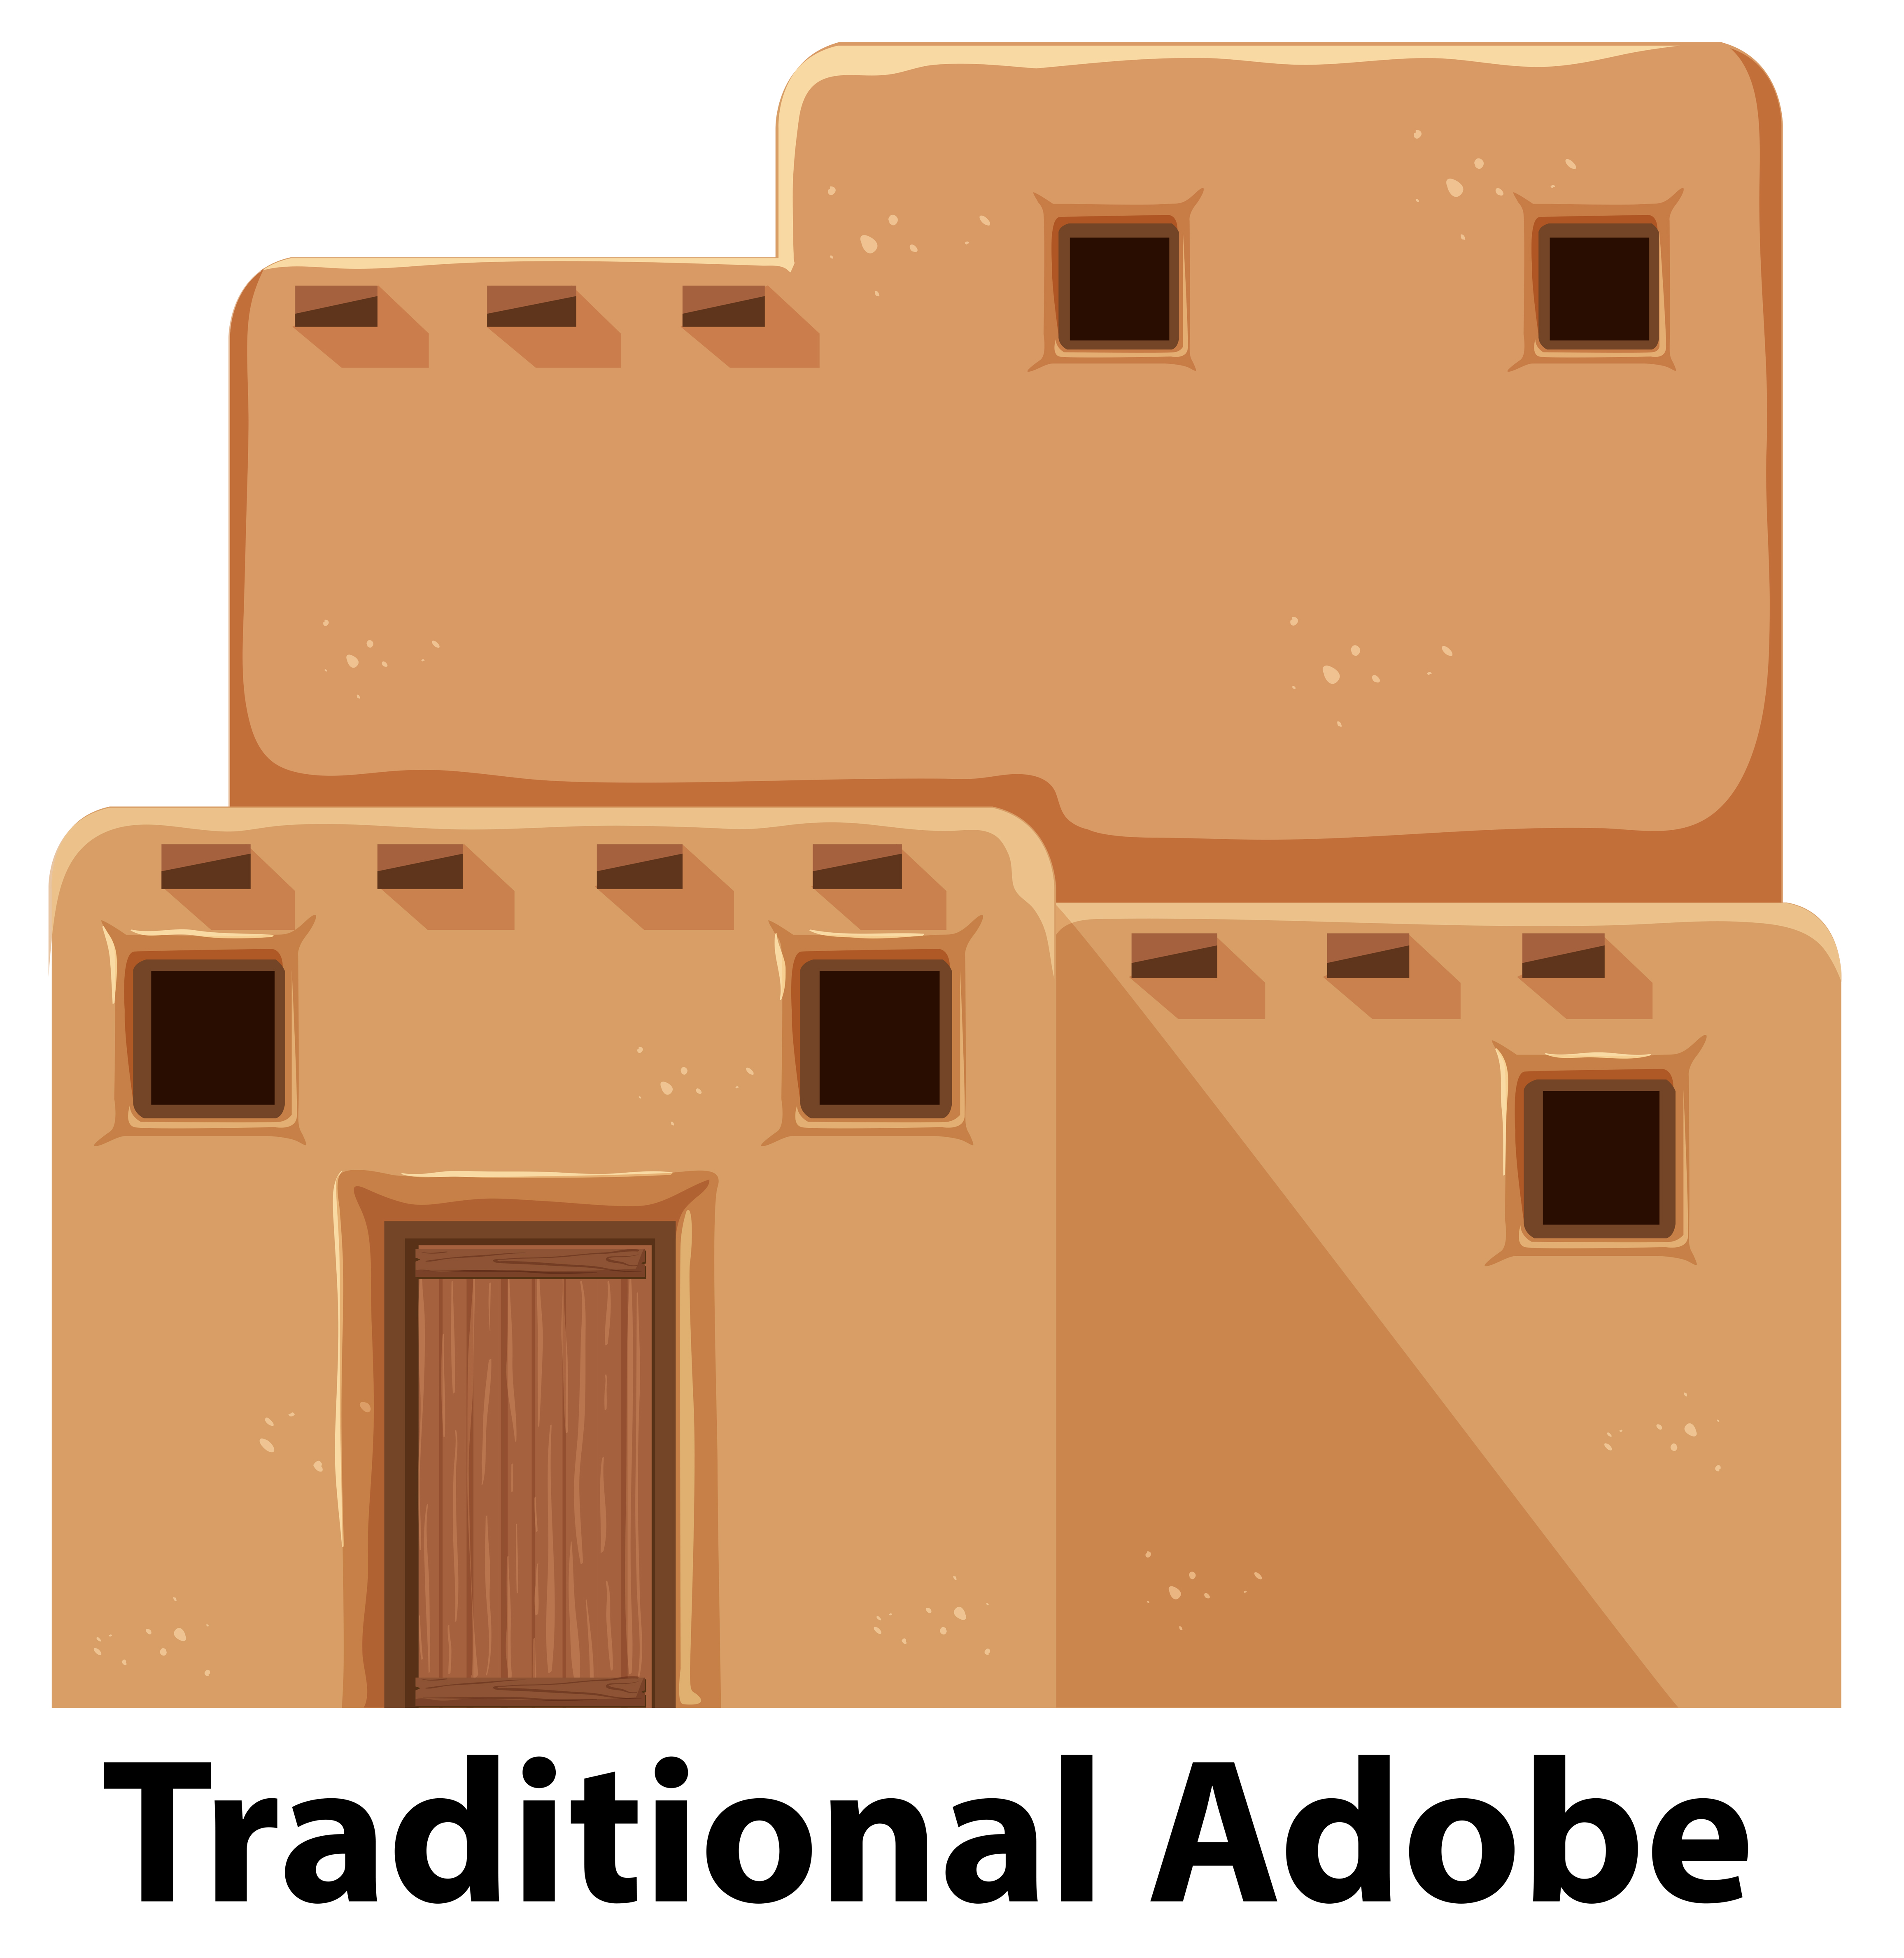 Best Website To Find Apartments: Adobe House Free Vector Art